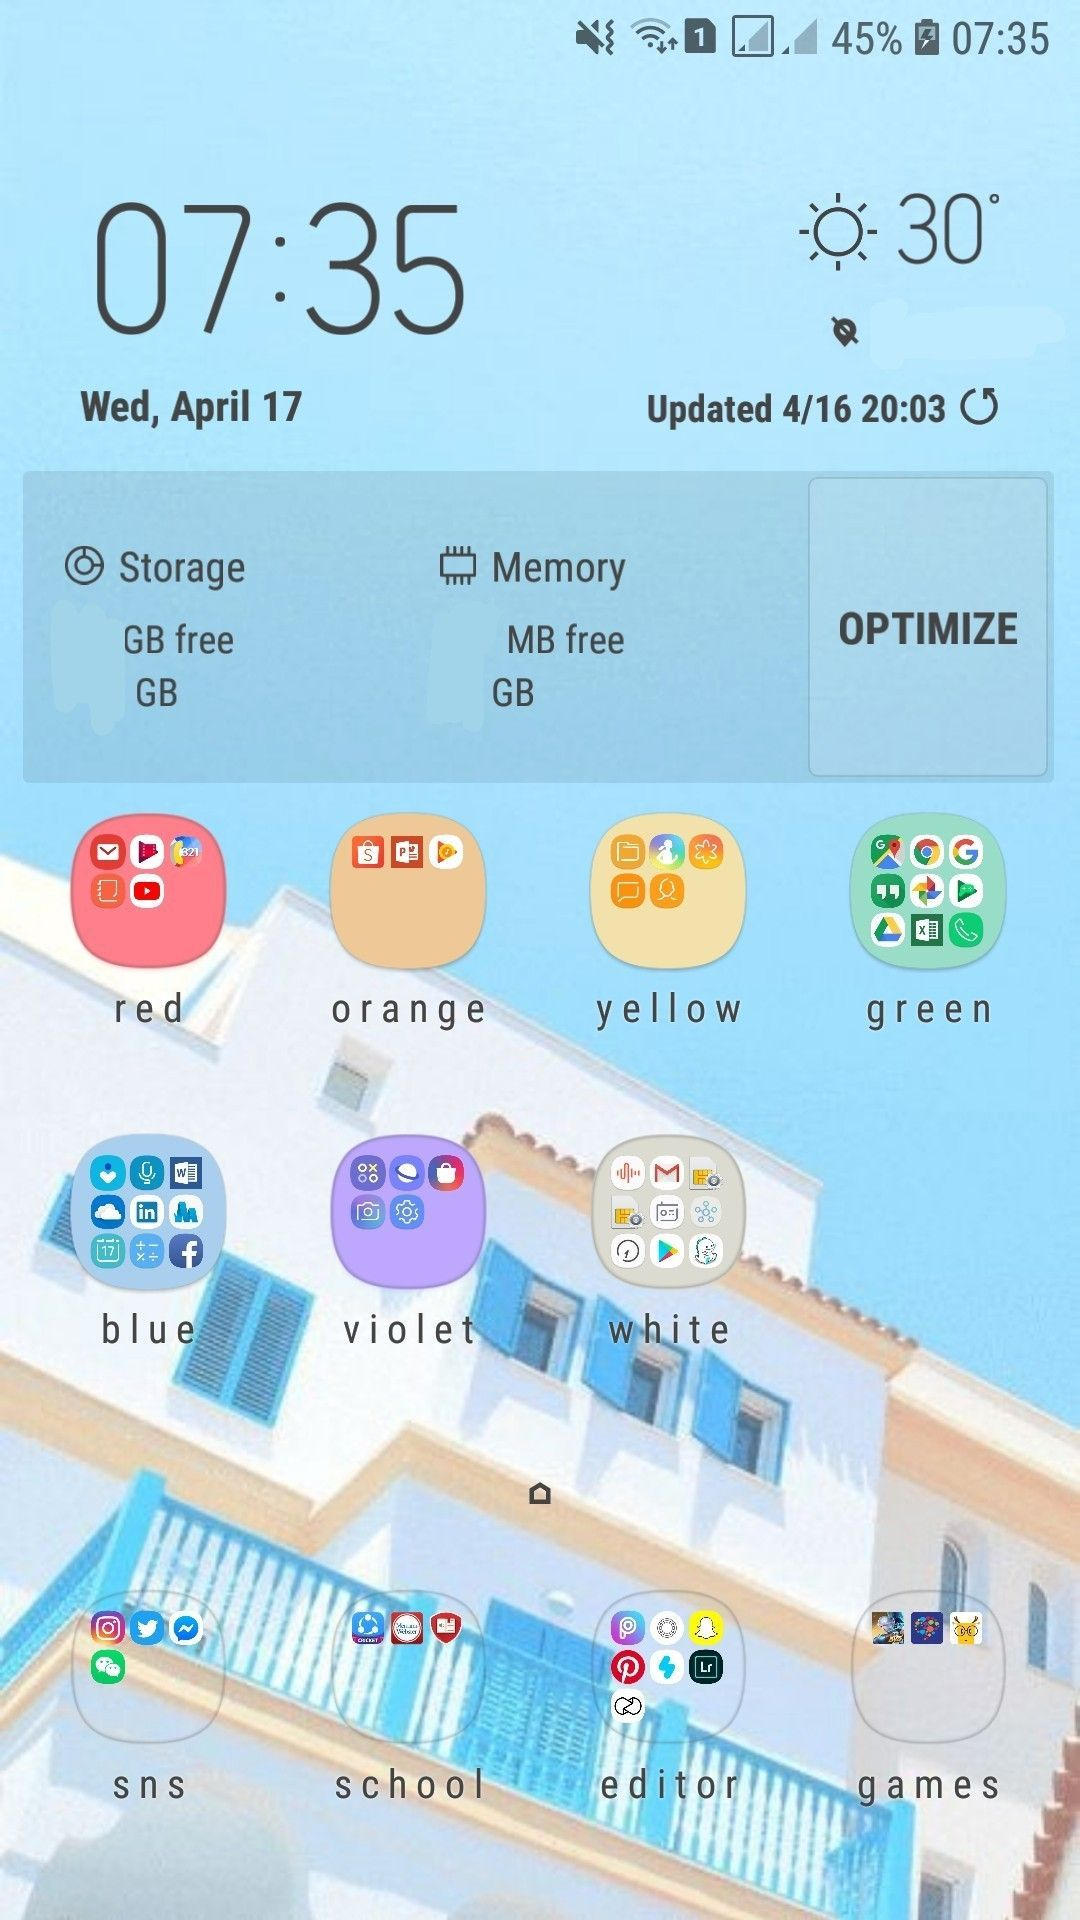 Toys Aesthetic Phone Organization Android Aesthetic Phone Organization Android Androides R In 2020 Phone Organization Android Organization Organize Phone Apps